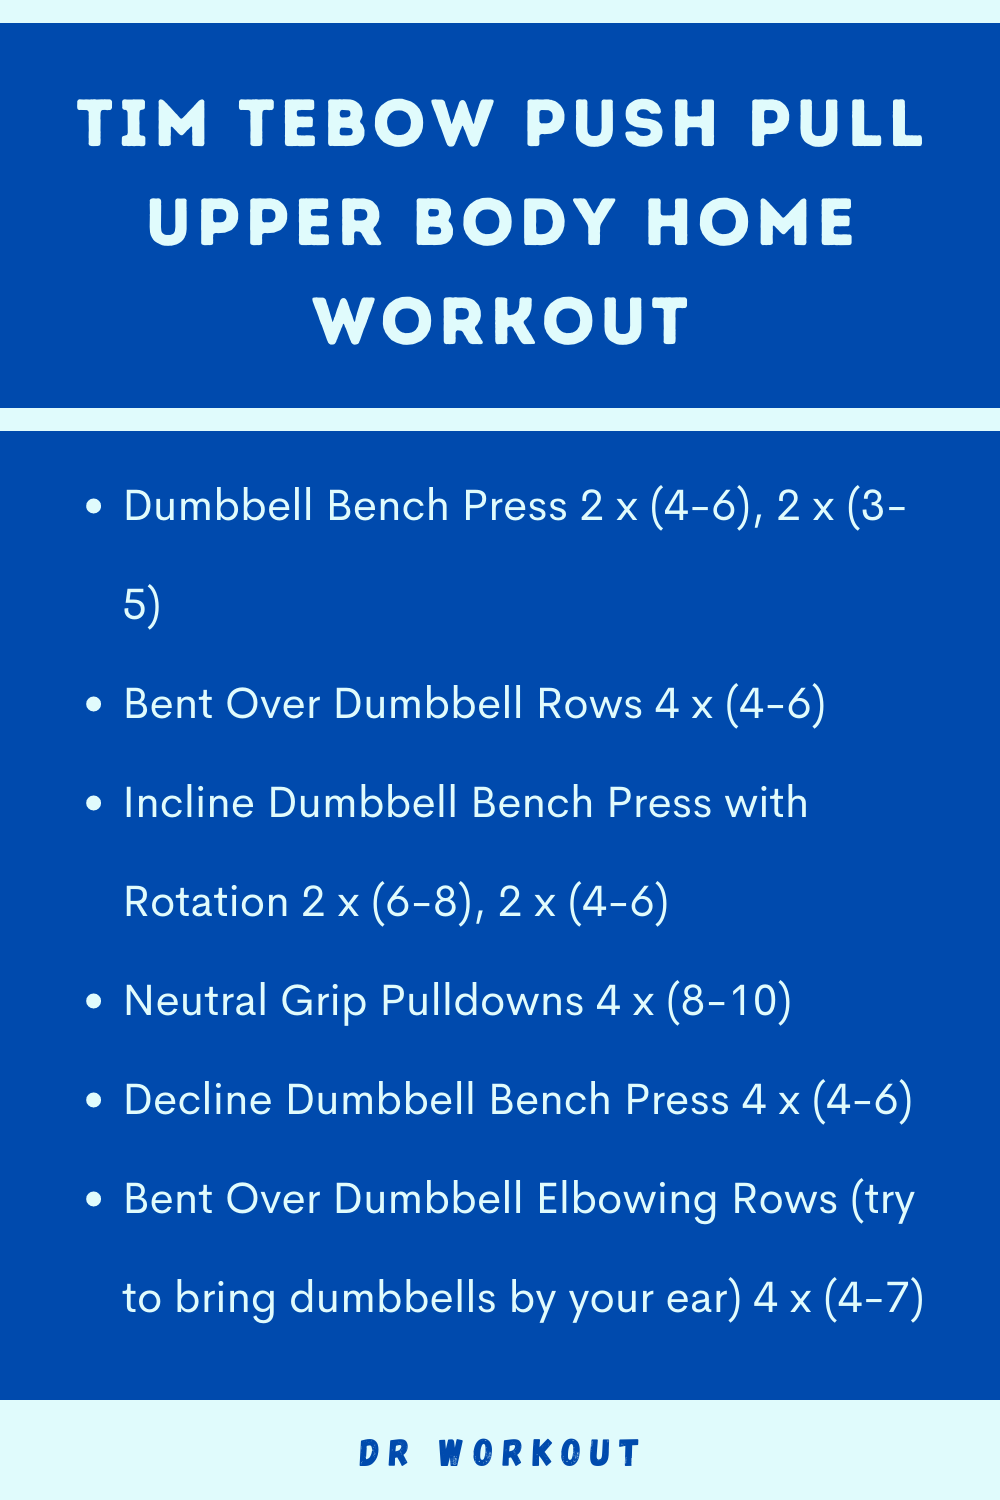 Tim Tebow Push Pull Upper Body Home Workout